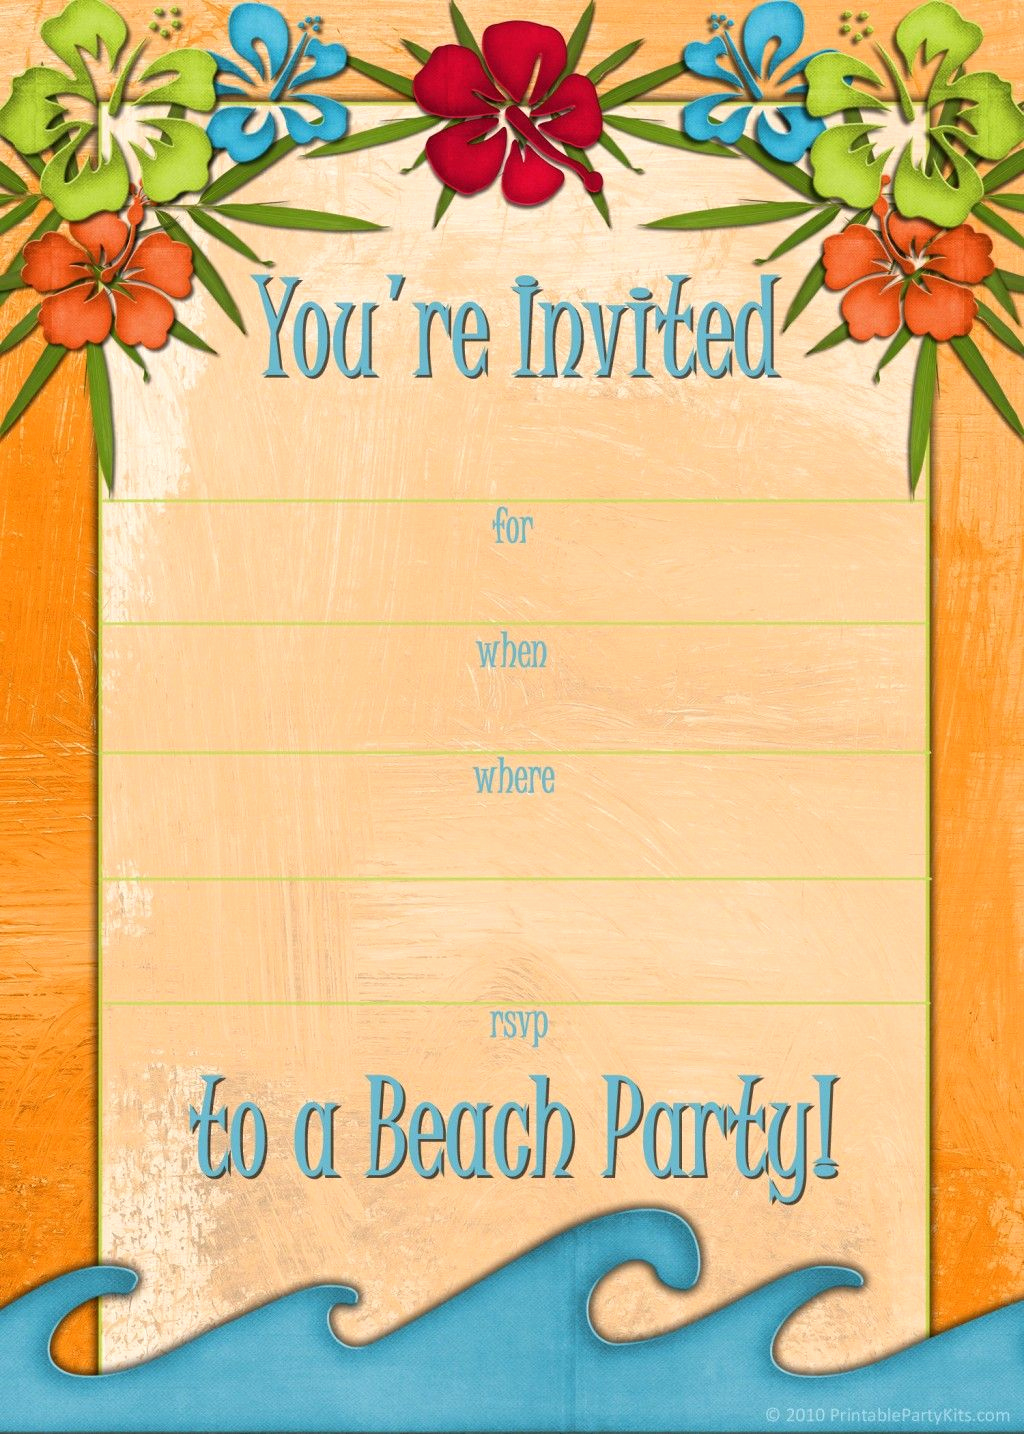 Beach Party Invitation Template Inspirational Free Printable Beach Party Luau and Bbq Invitations